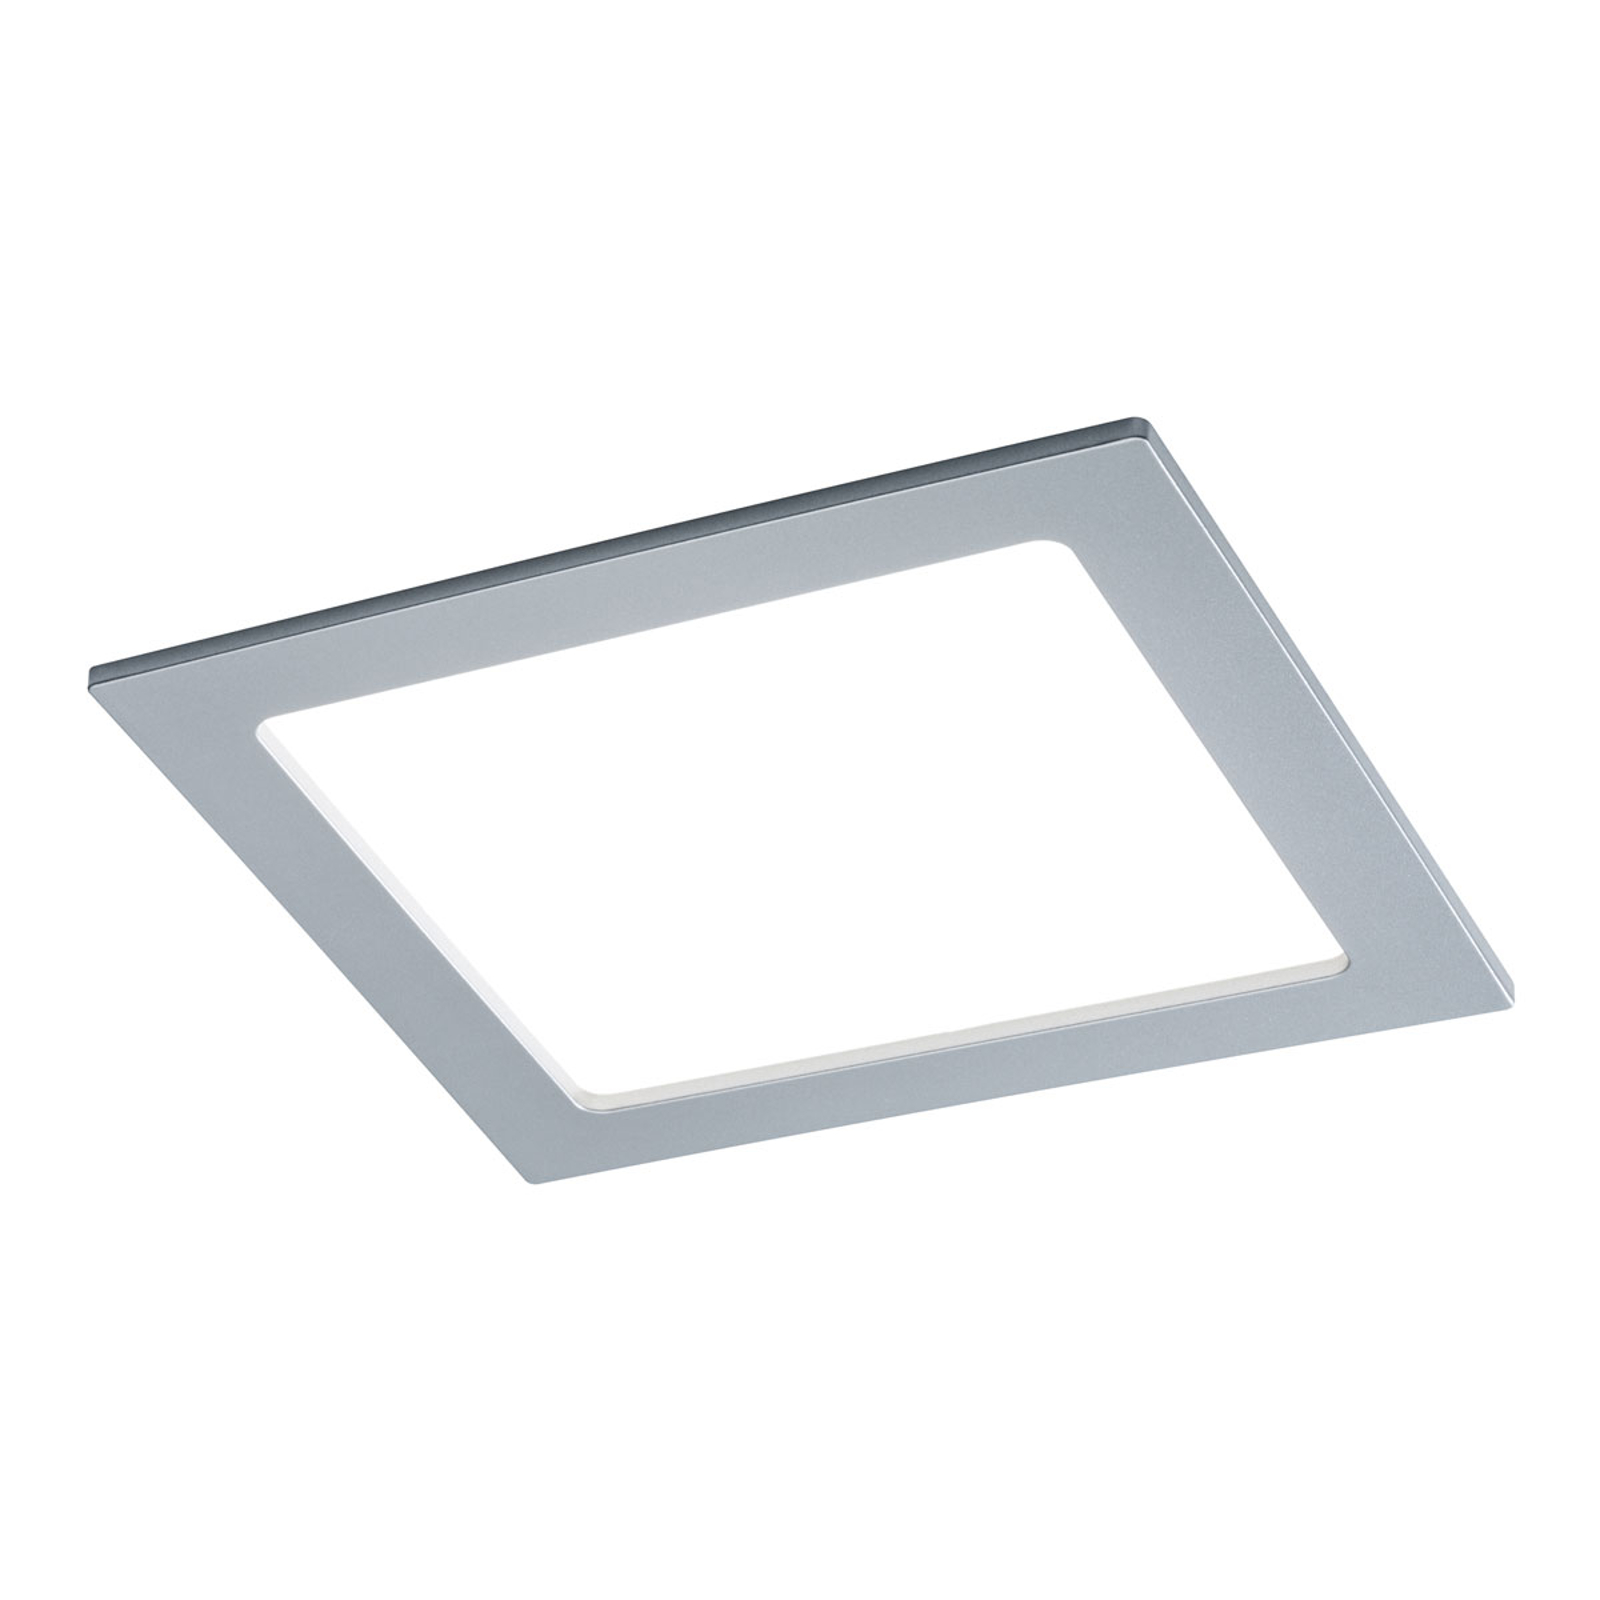 Paulmann LED-panel, kantet, 18W, 4.000 K, krom